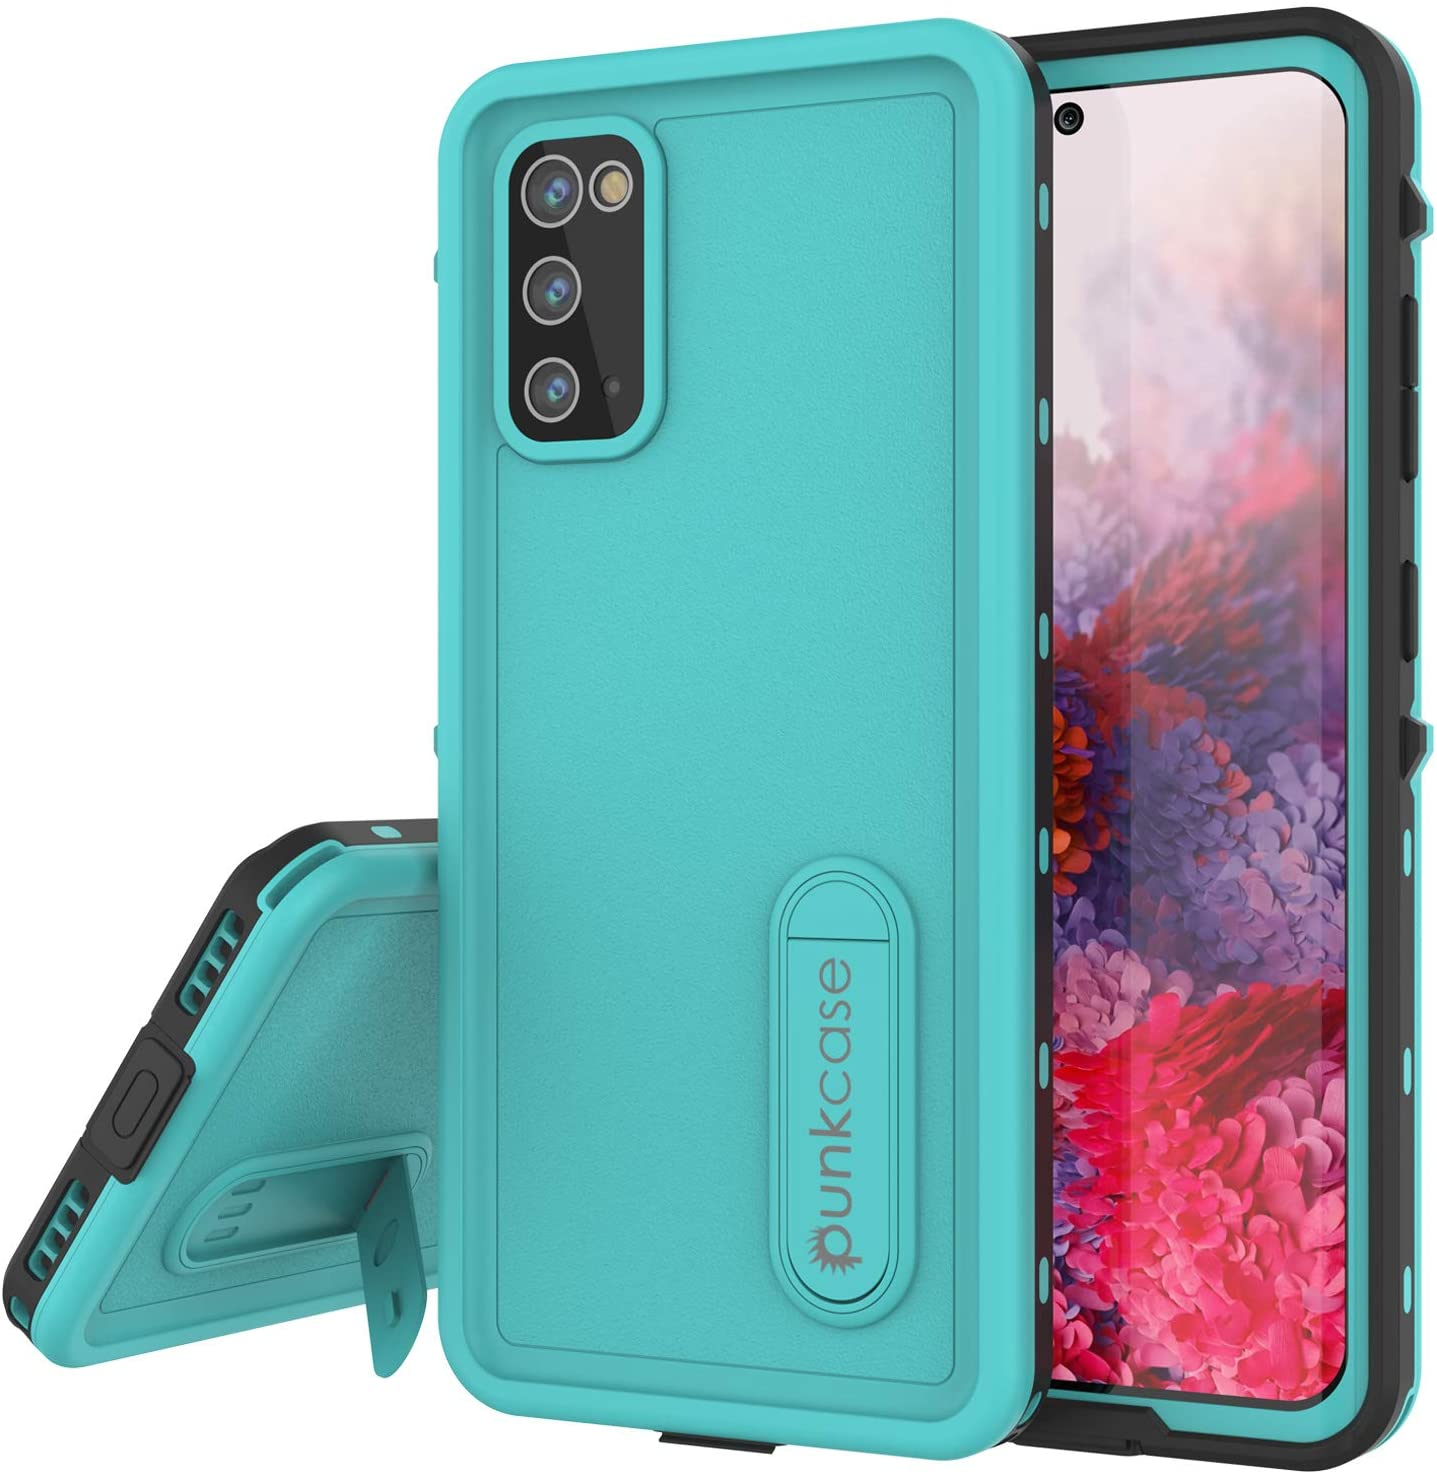 Galaxy S20 Waterproof Case, Punkcase [KickStud Series] Armor Cover [Teal]